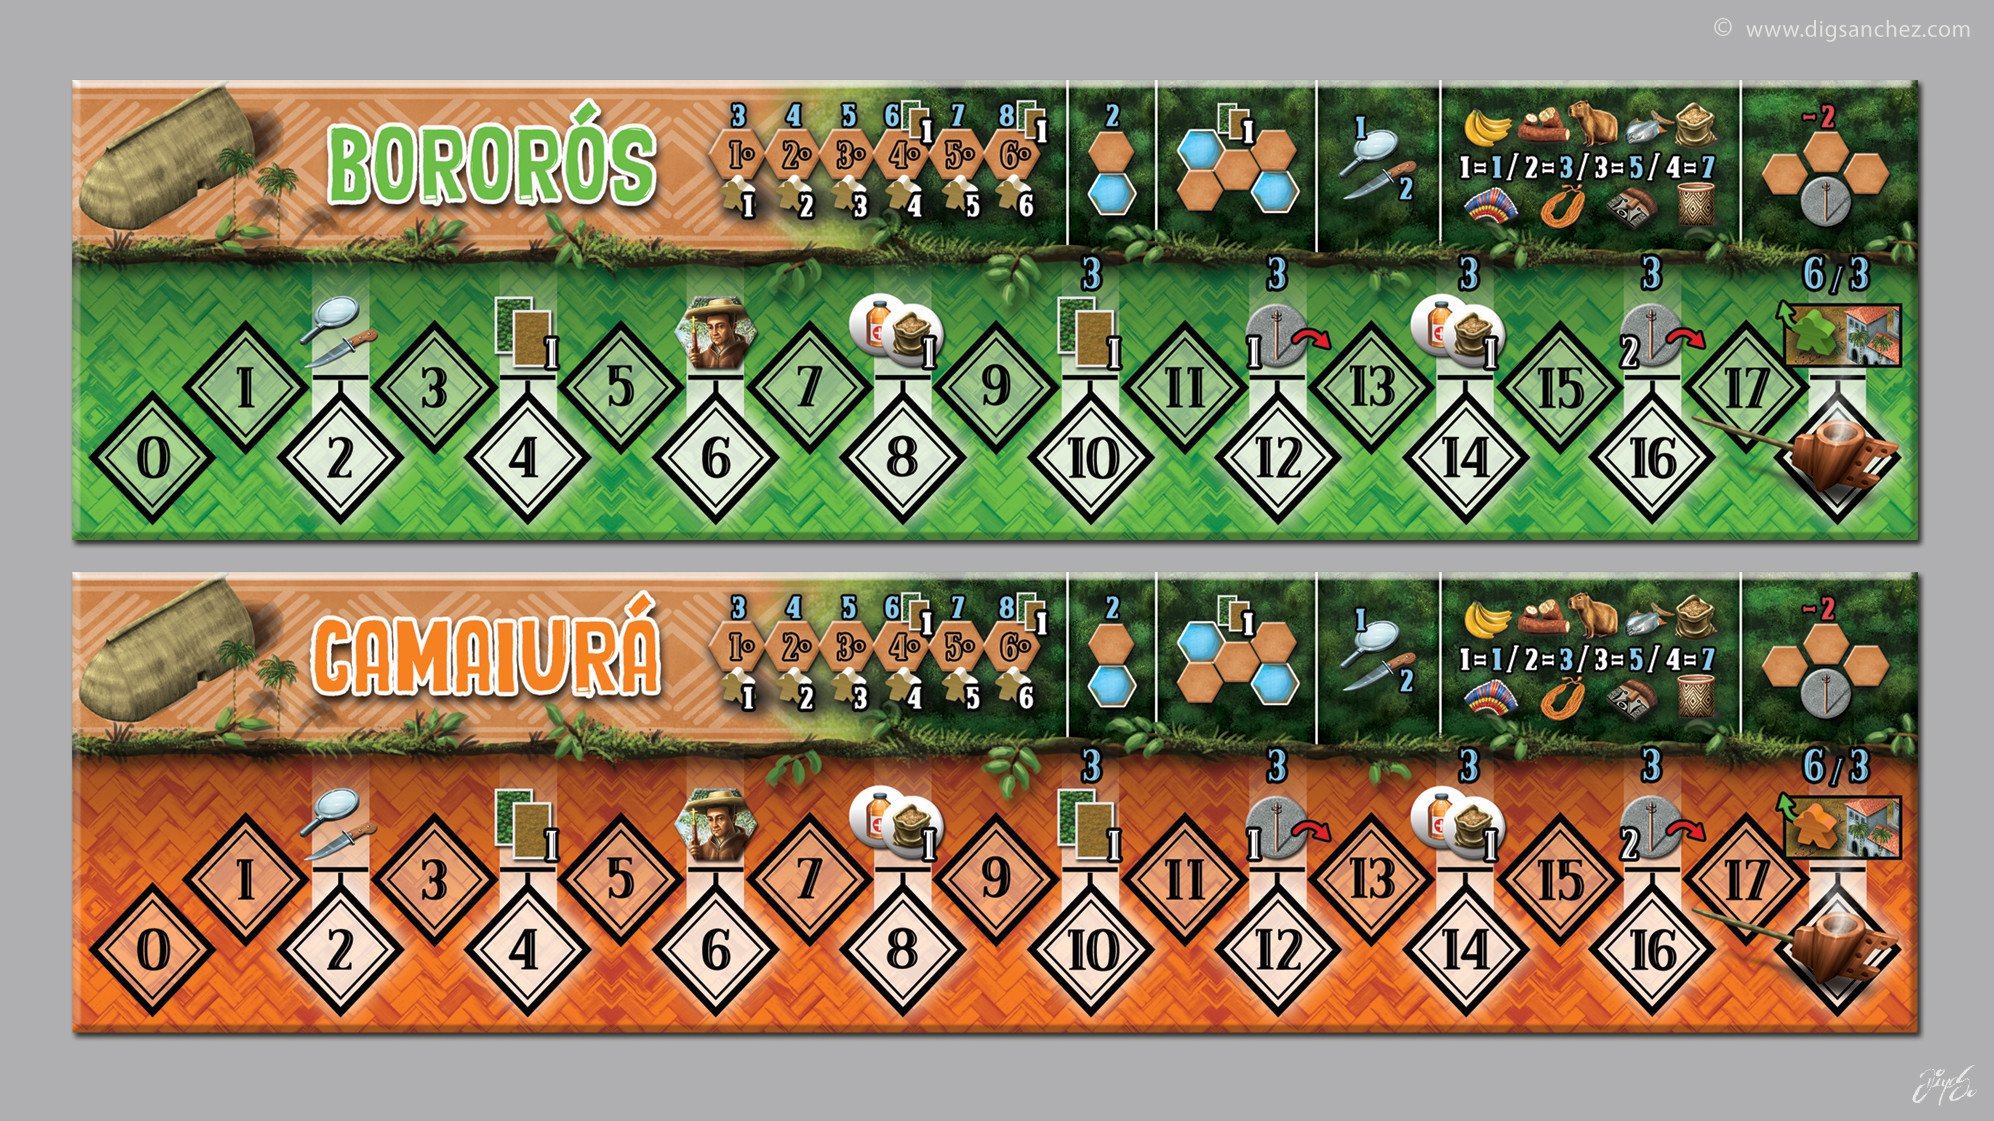 Players boards